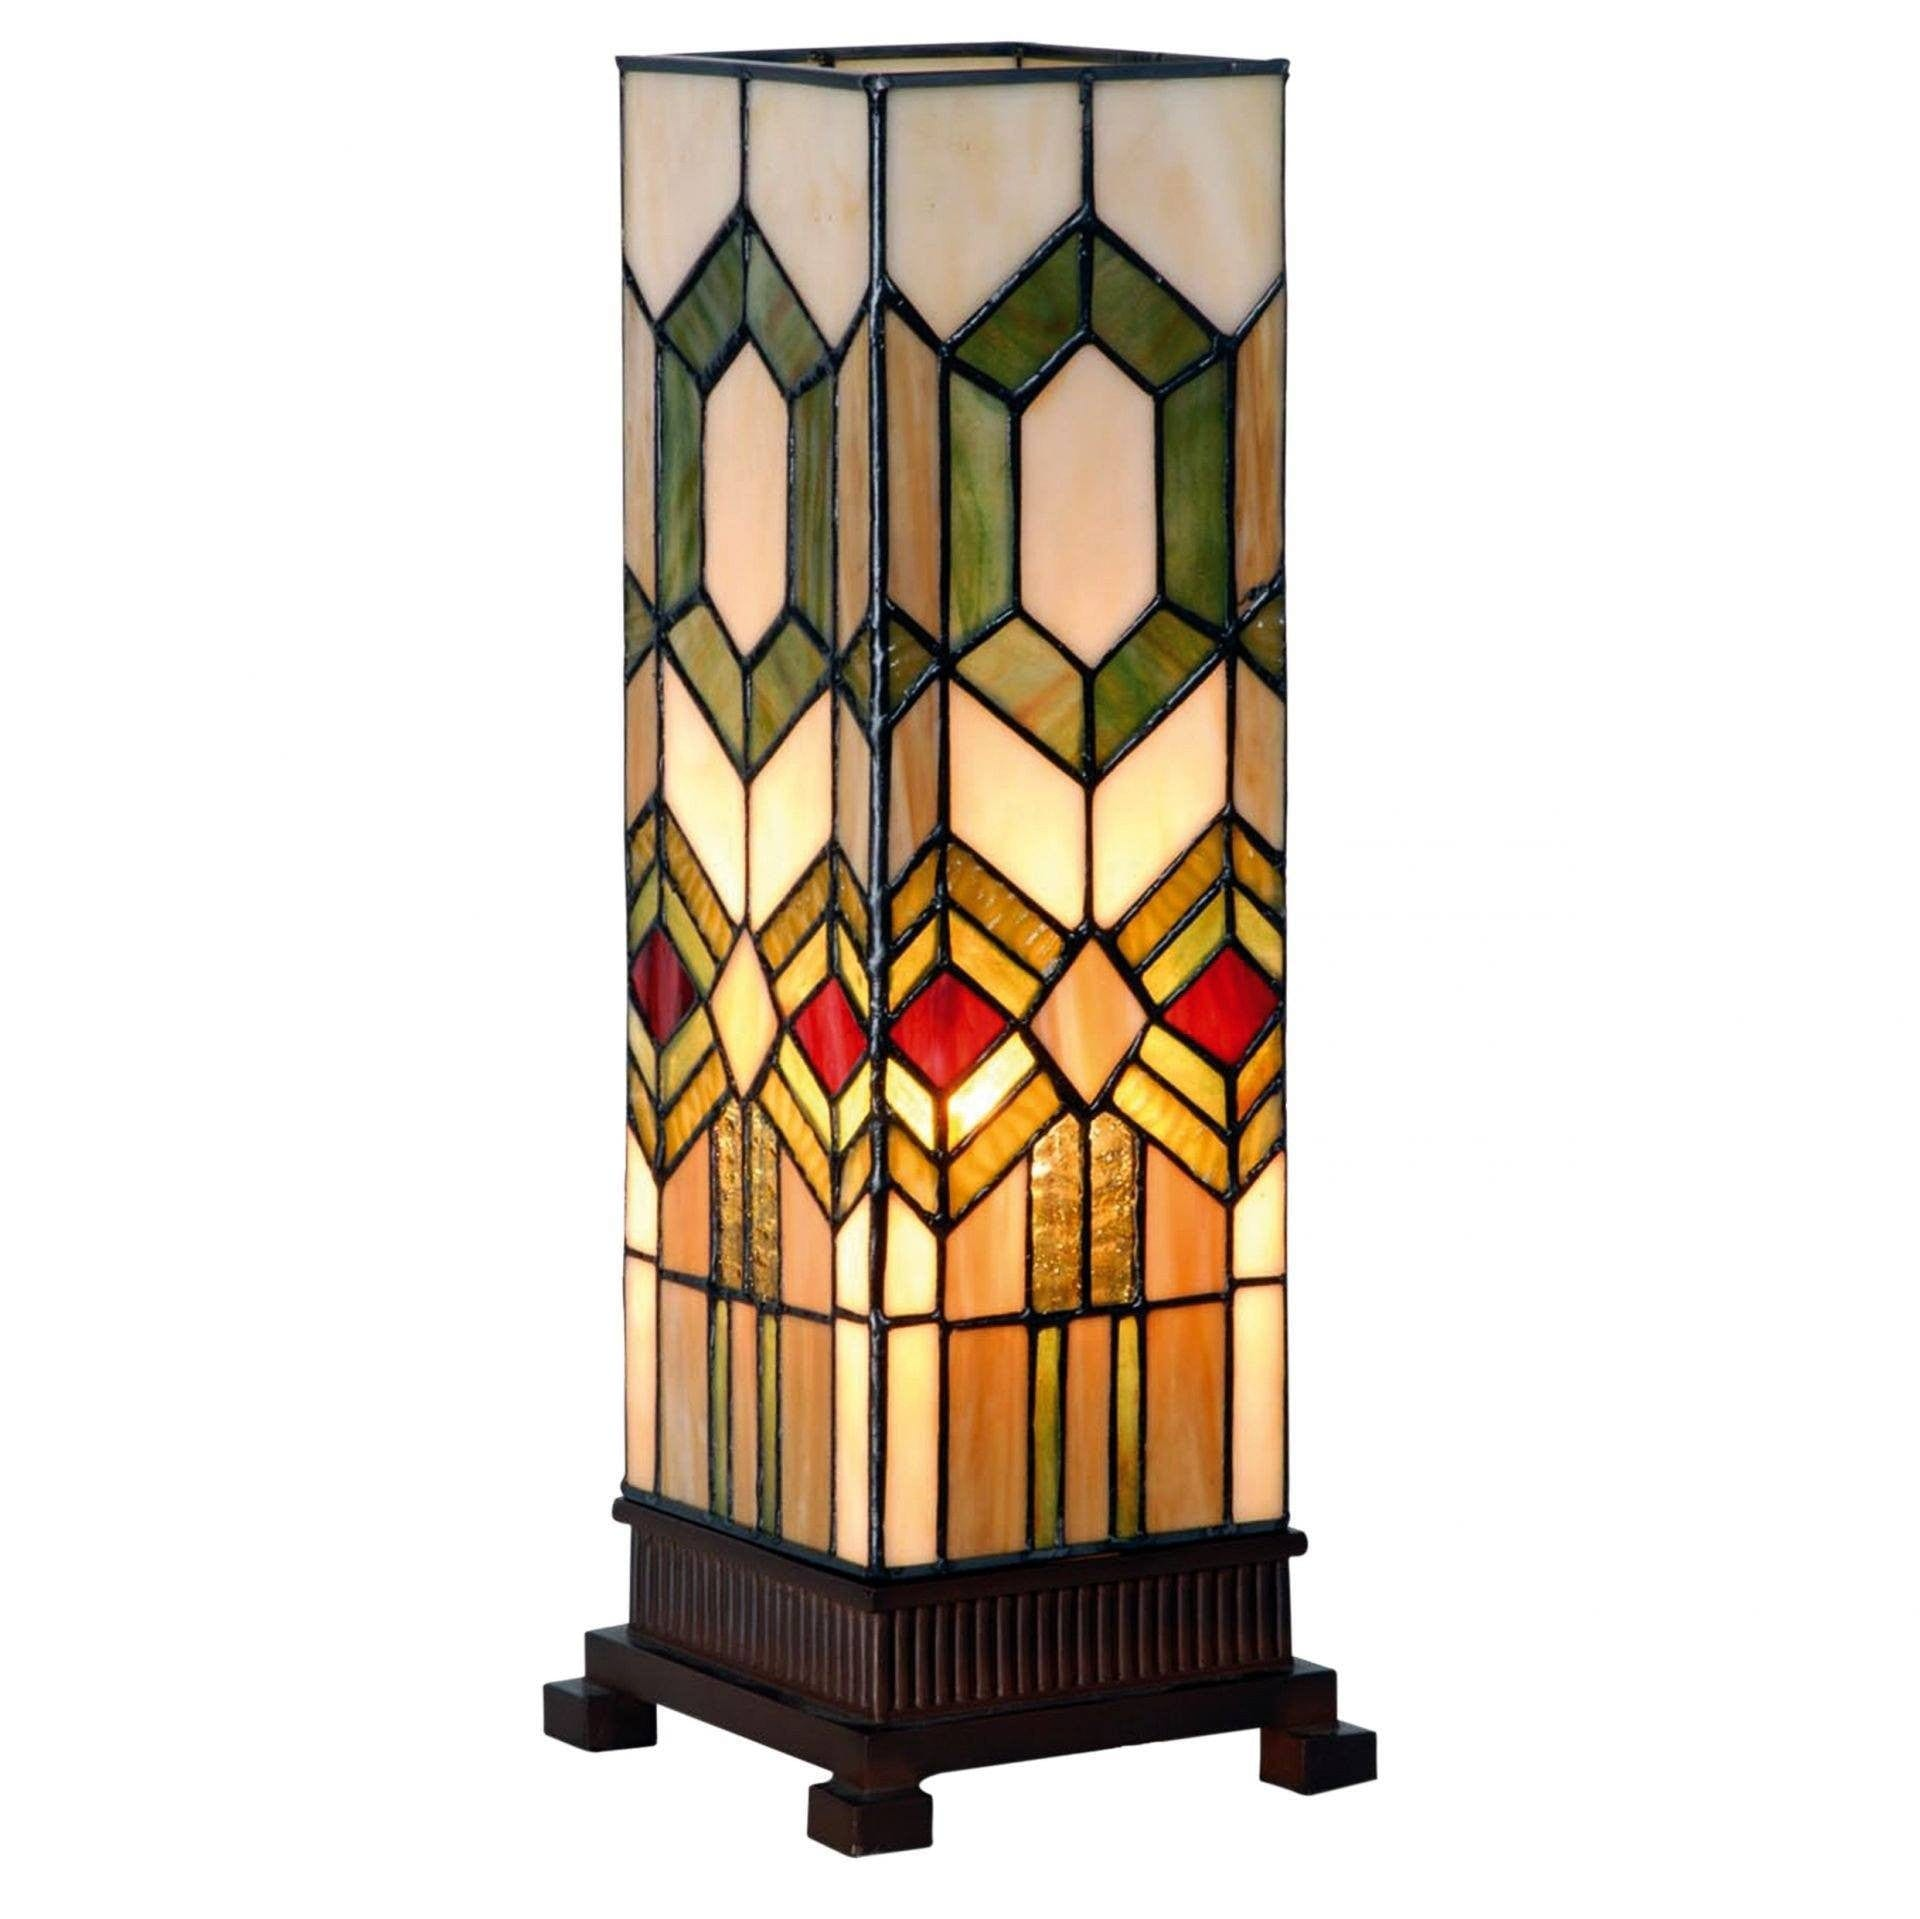 Tiffany Square Table Lamps - Chicago Medium Tiffany Square Table Lamp